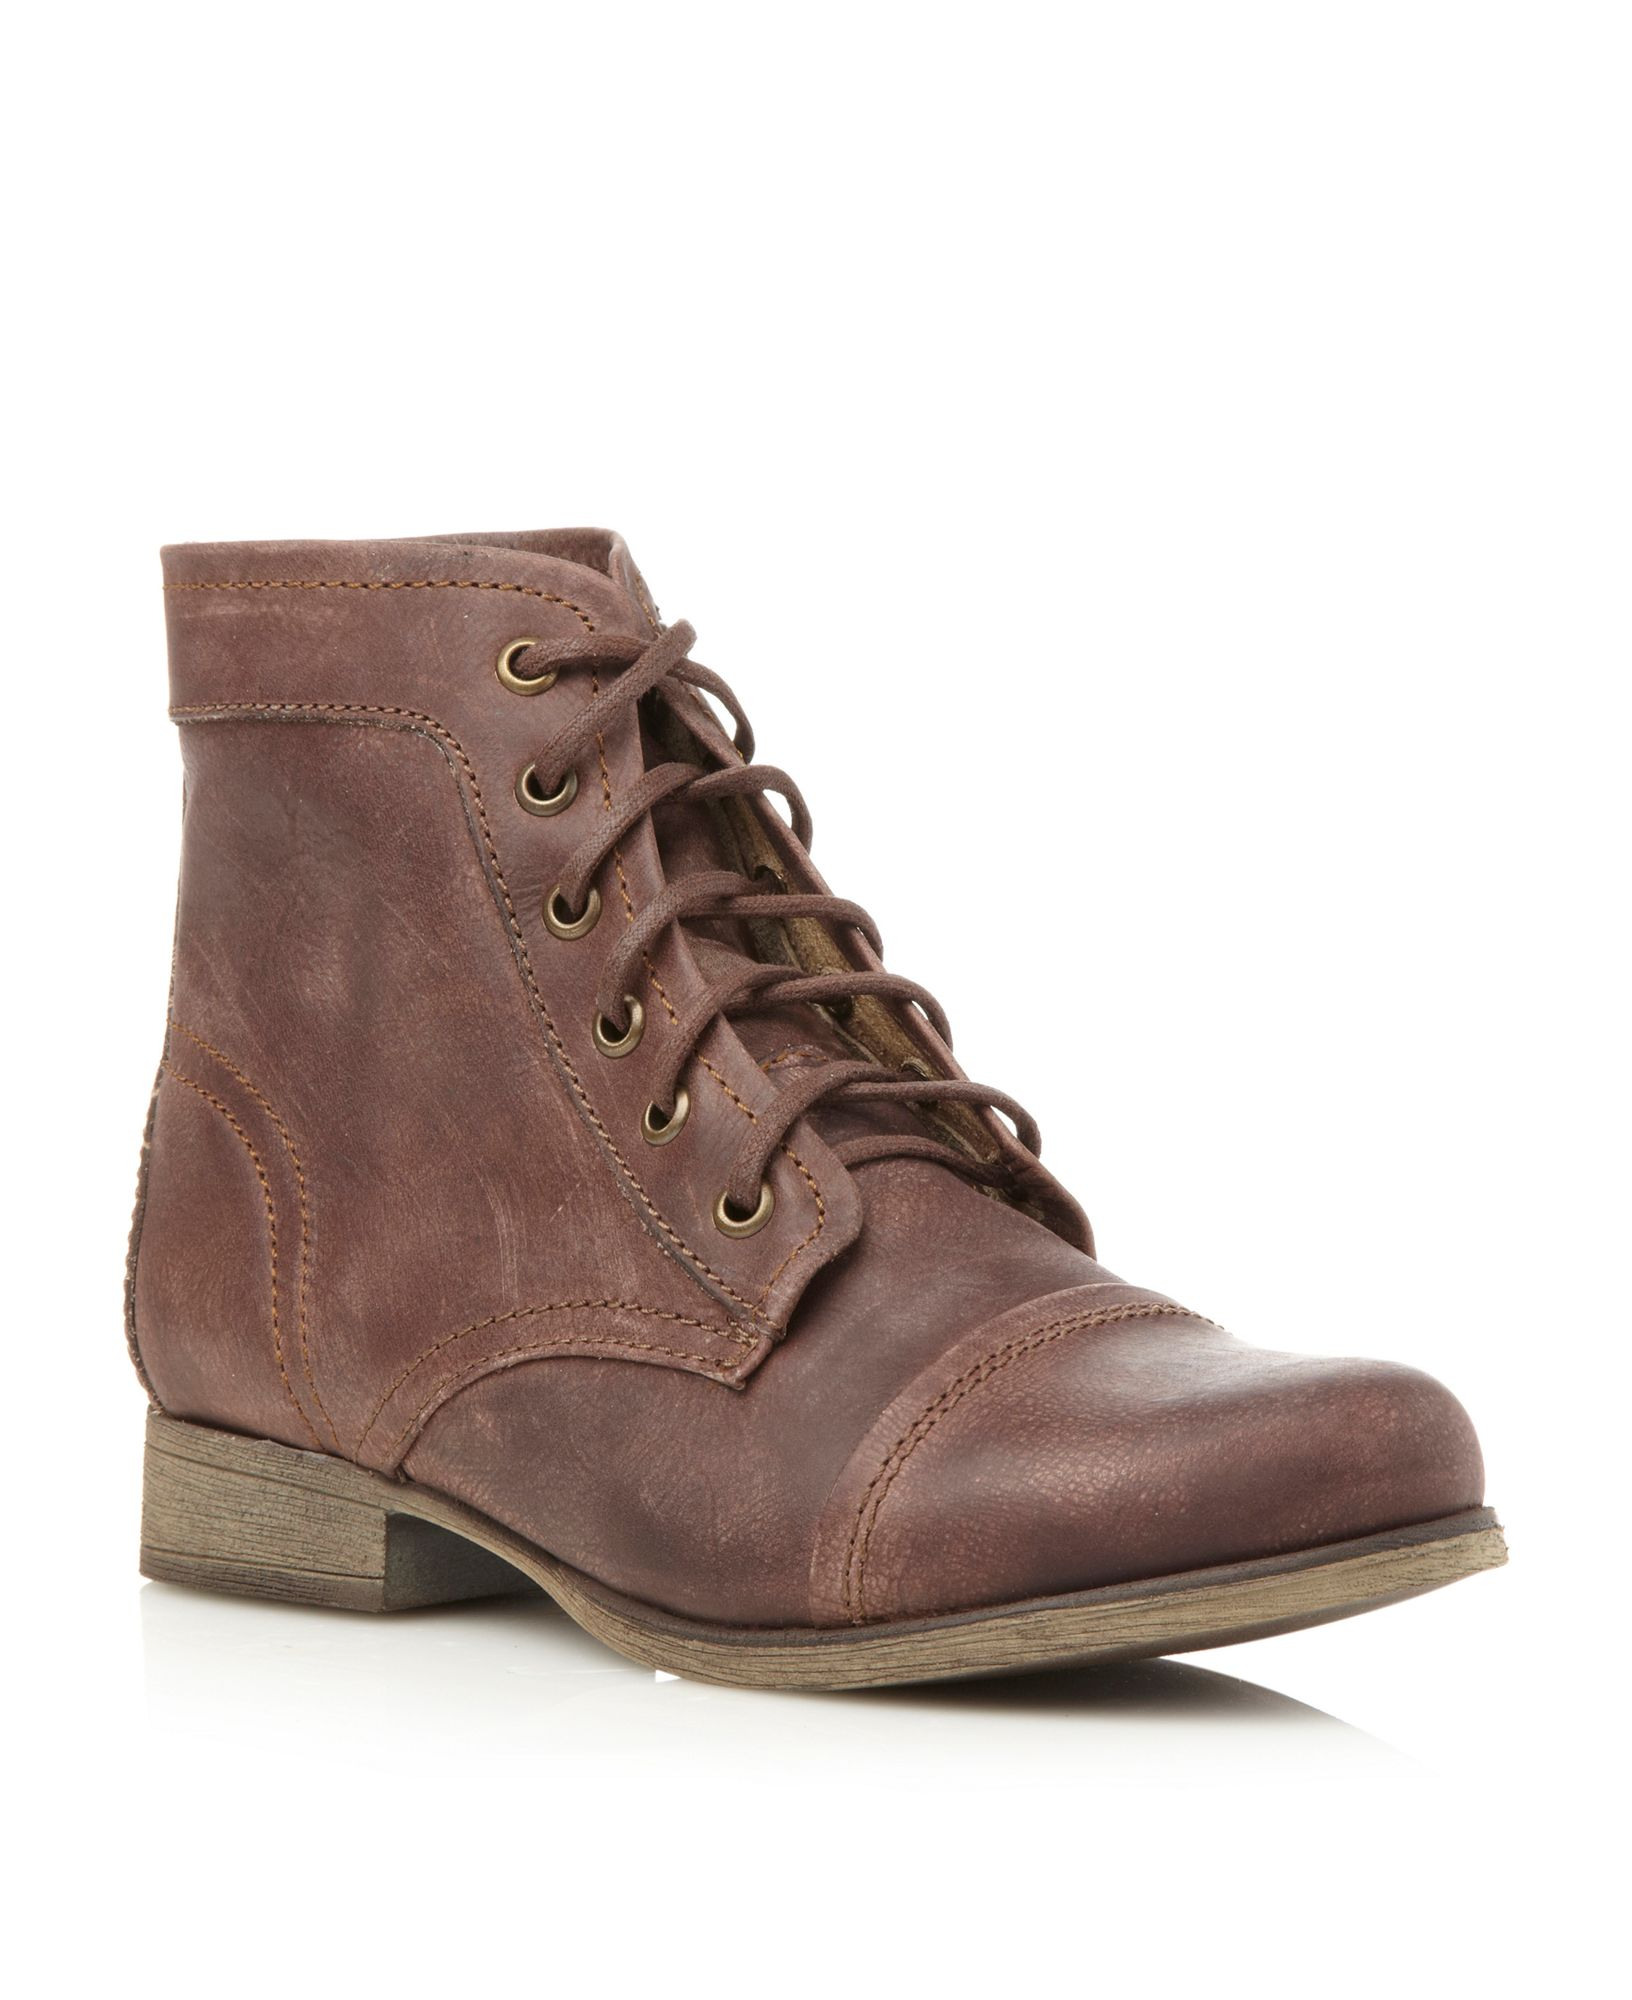 steve madden thunderr lace up worker boots in brown for